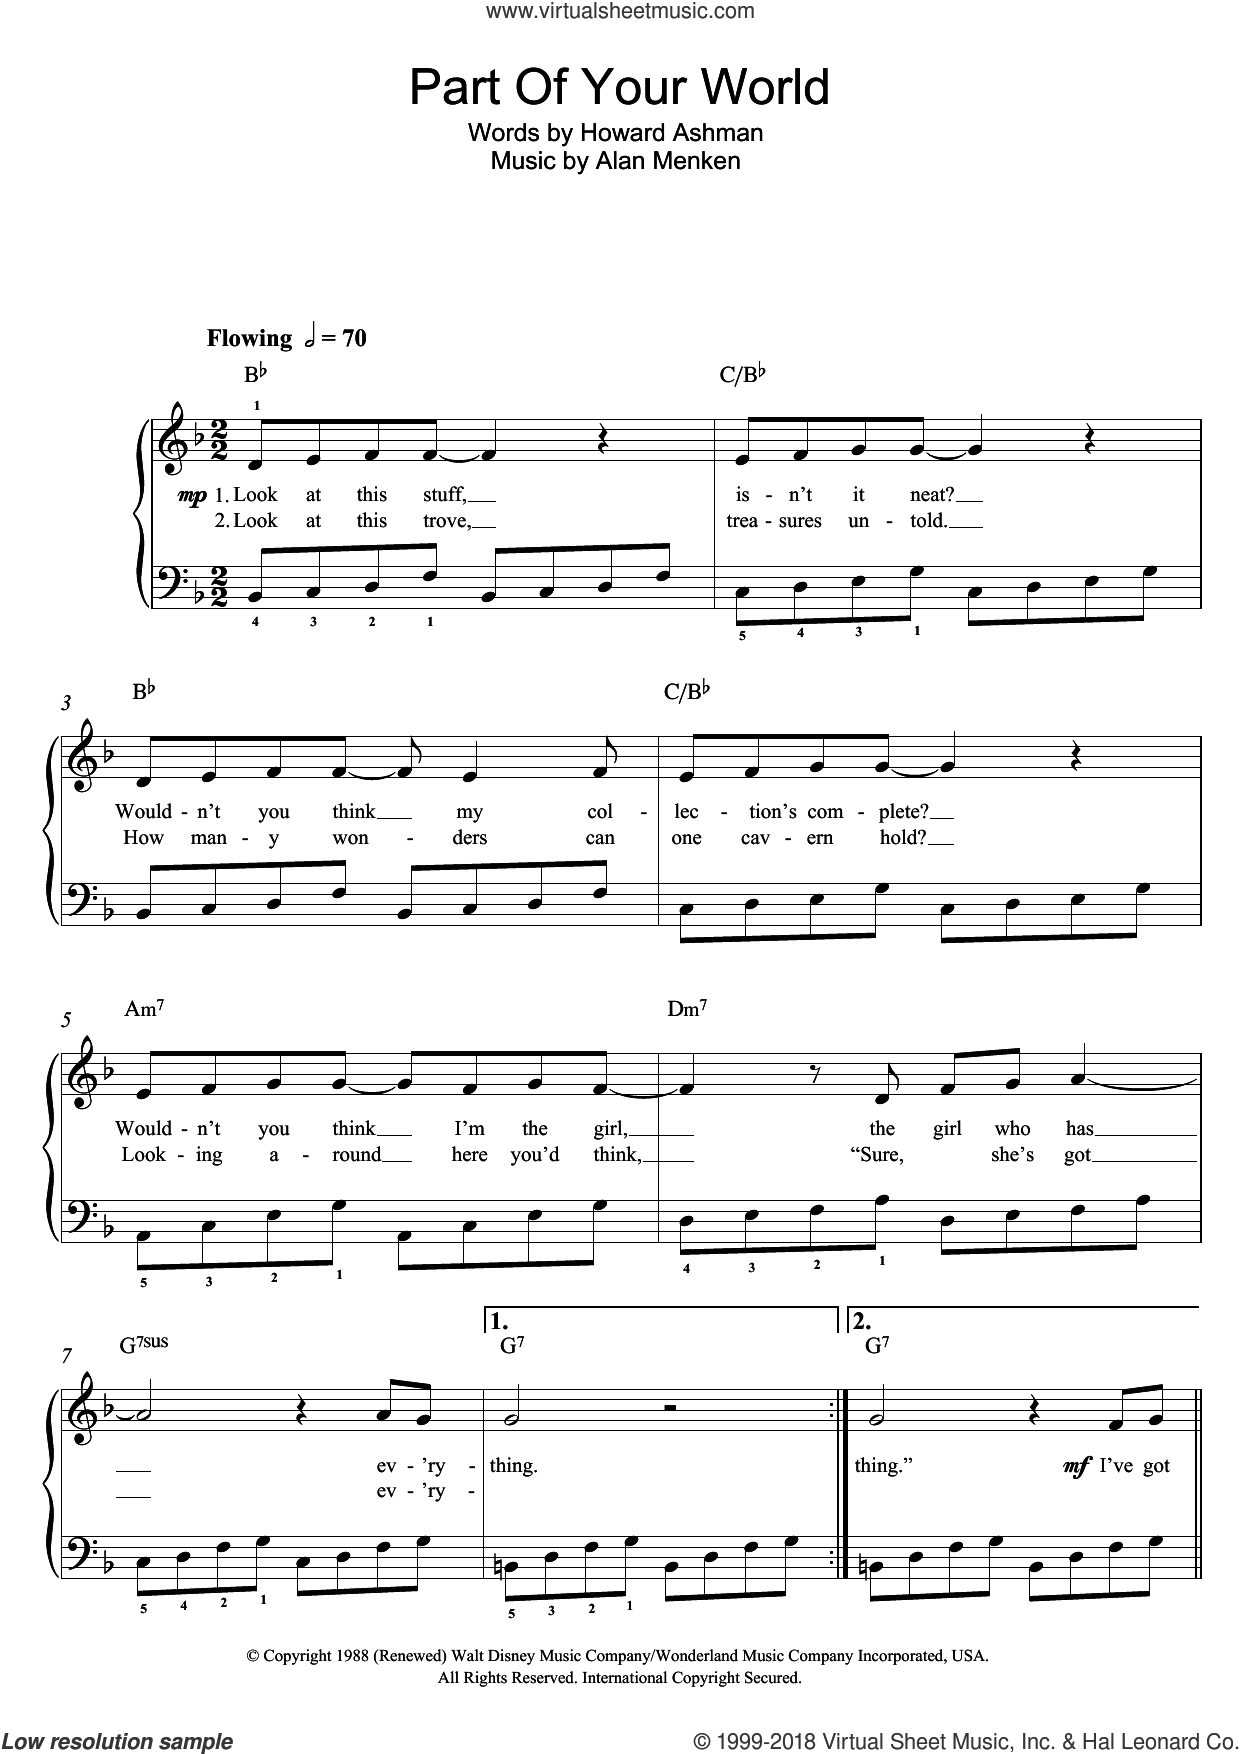 Part Of Your World (from The Little Mermaid) sheet music for piano solo (beginners) by Jodi Benson, Alan Menken and Howard Ashman, beginner piano (beginners)